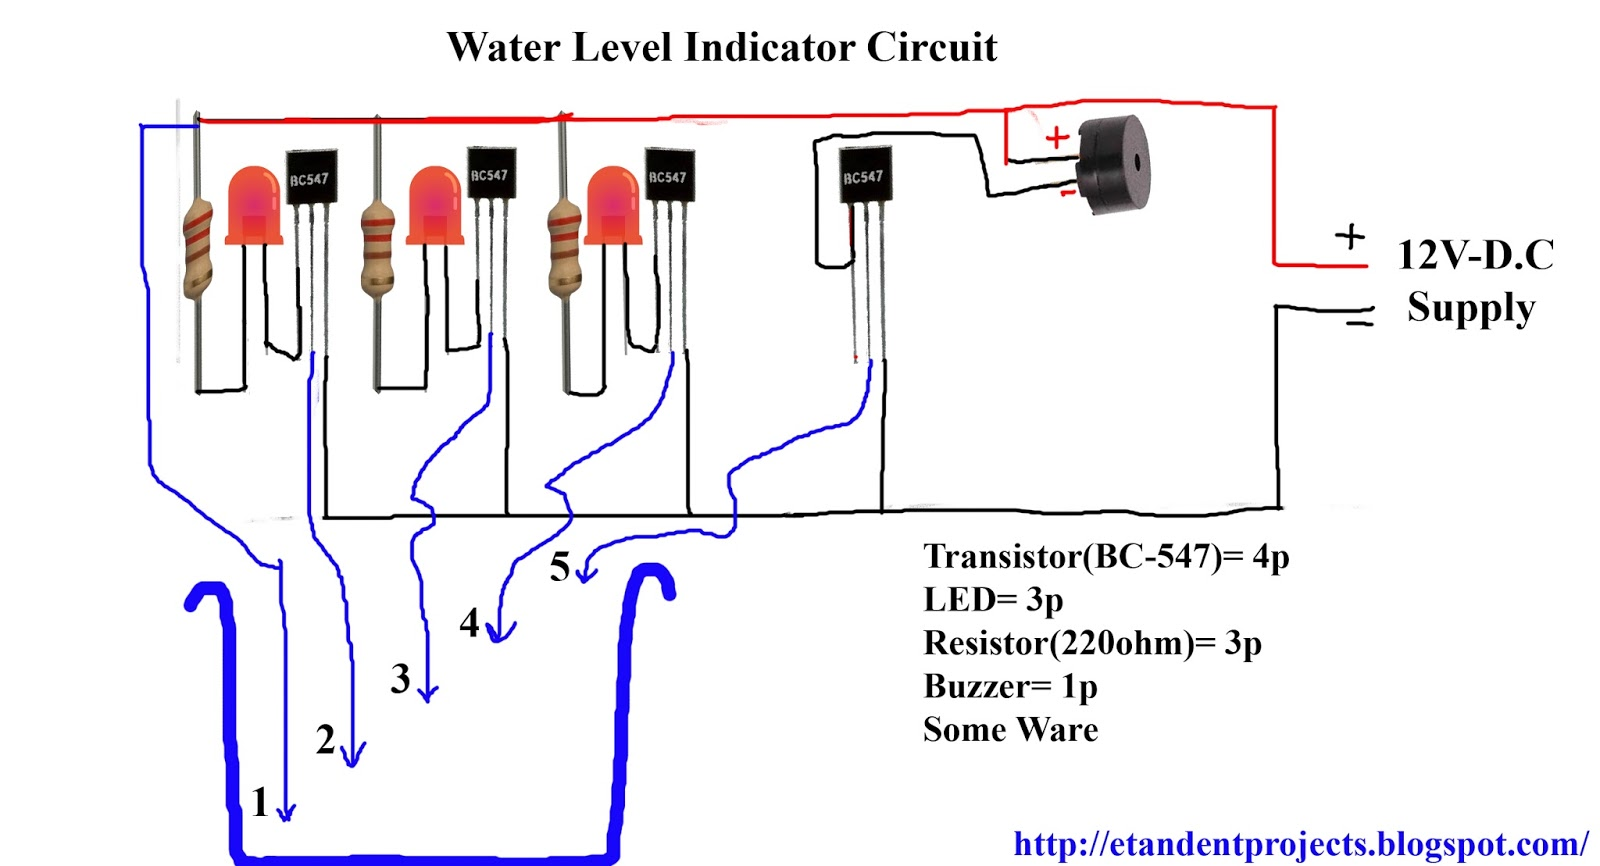 water level indicator circuit diagram et ent project s rh etandentprojects blogspot com circuit diagram of water level indicator with alarm circuit diagram of water level indicator using arduino